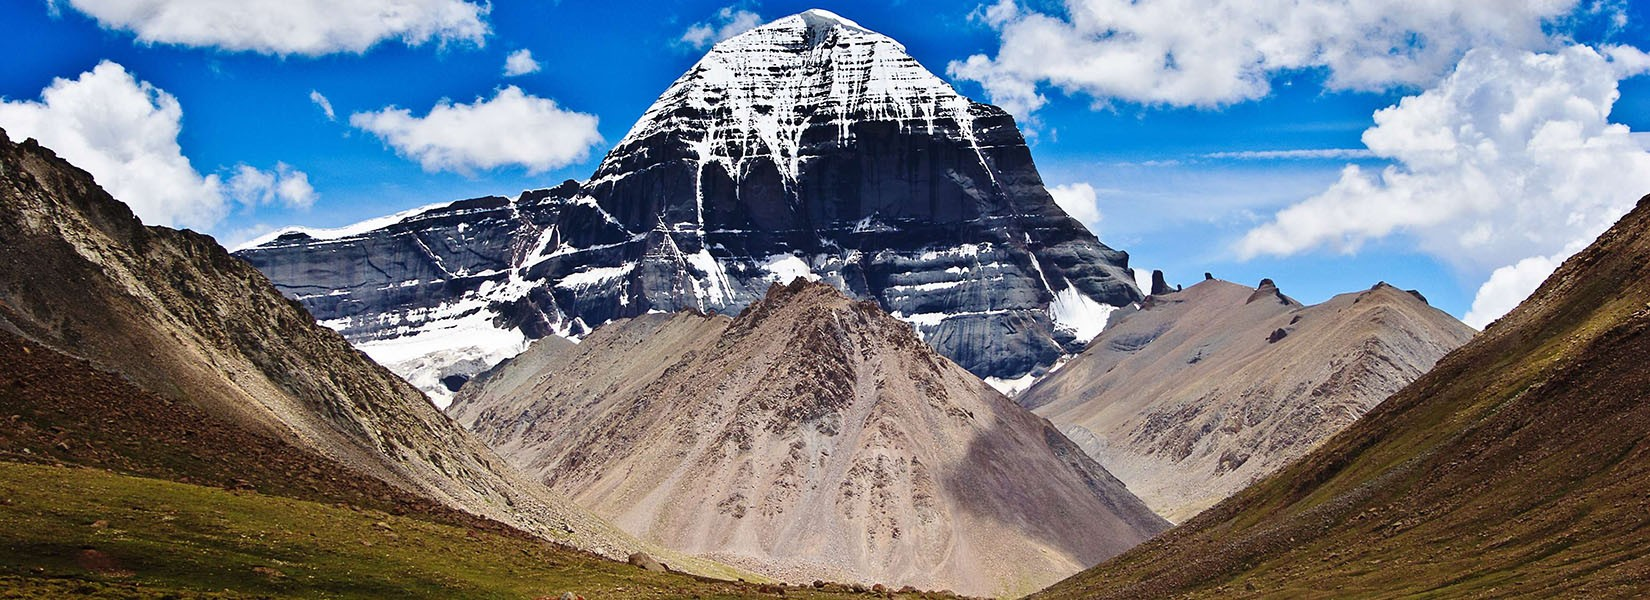 Manasarovar and Mt. Kailash tour (14 Days)